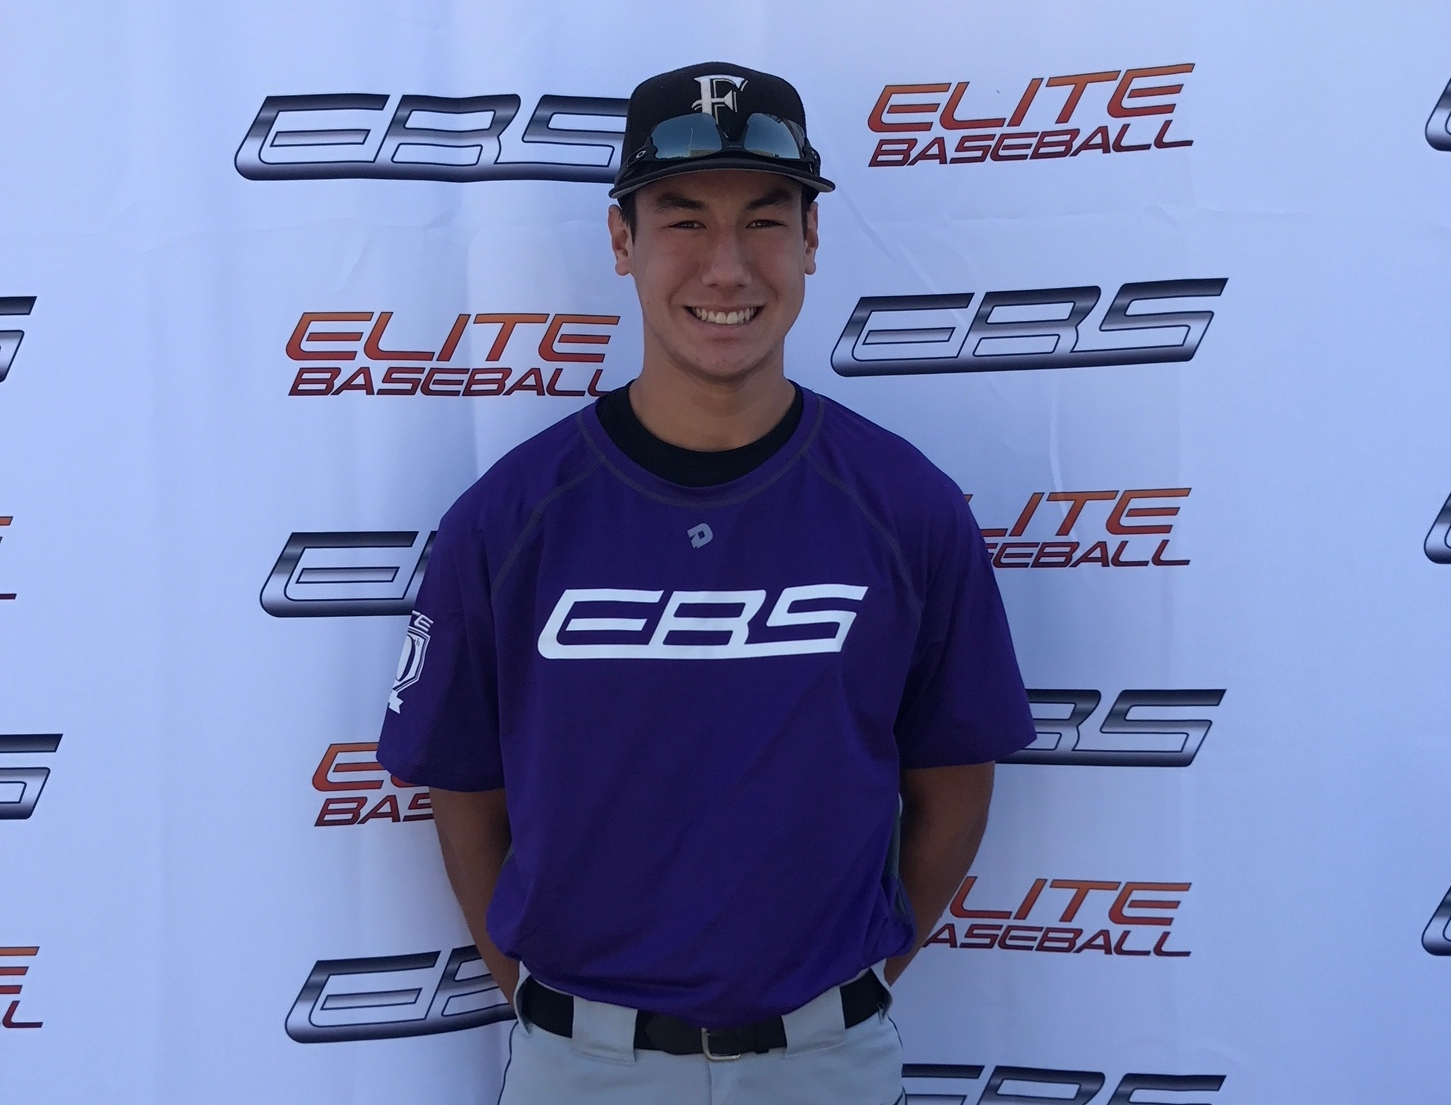 Chad castillo | 2018 | foothill | socal birds | Cal baptist